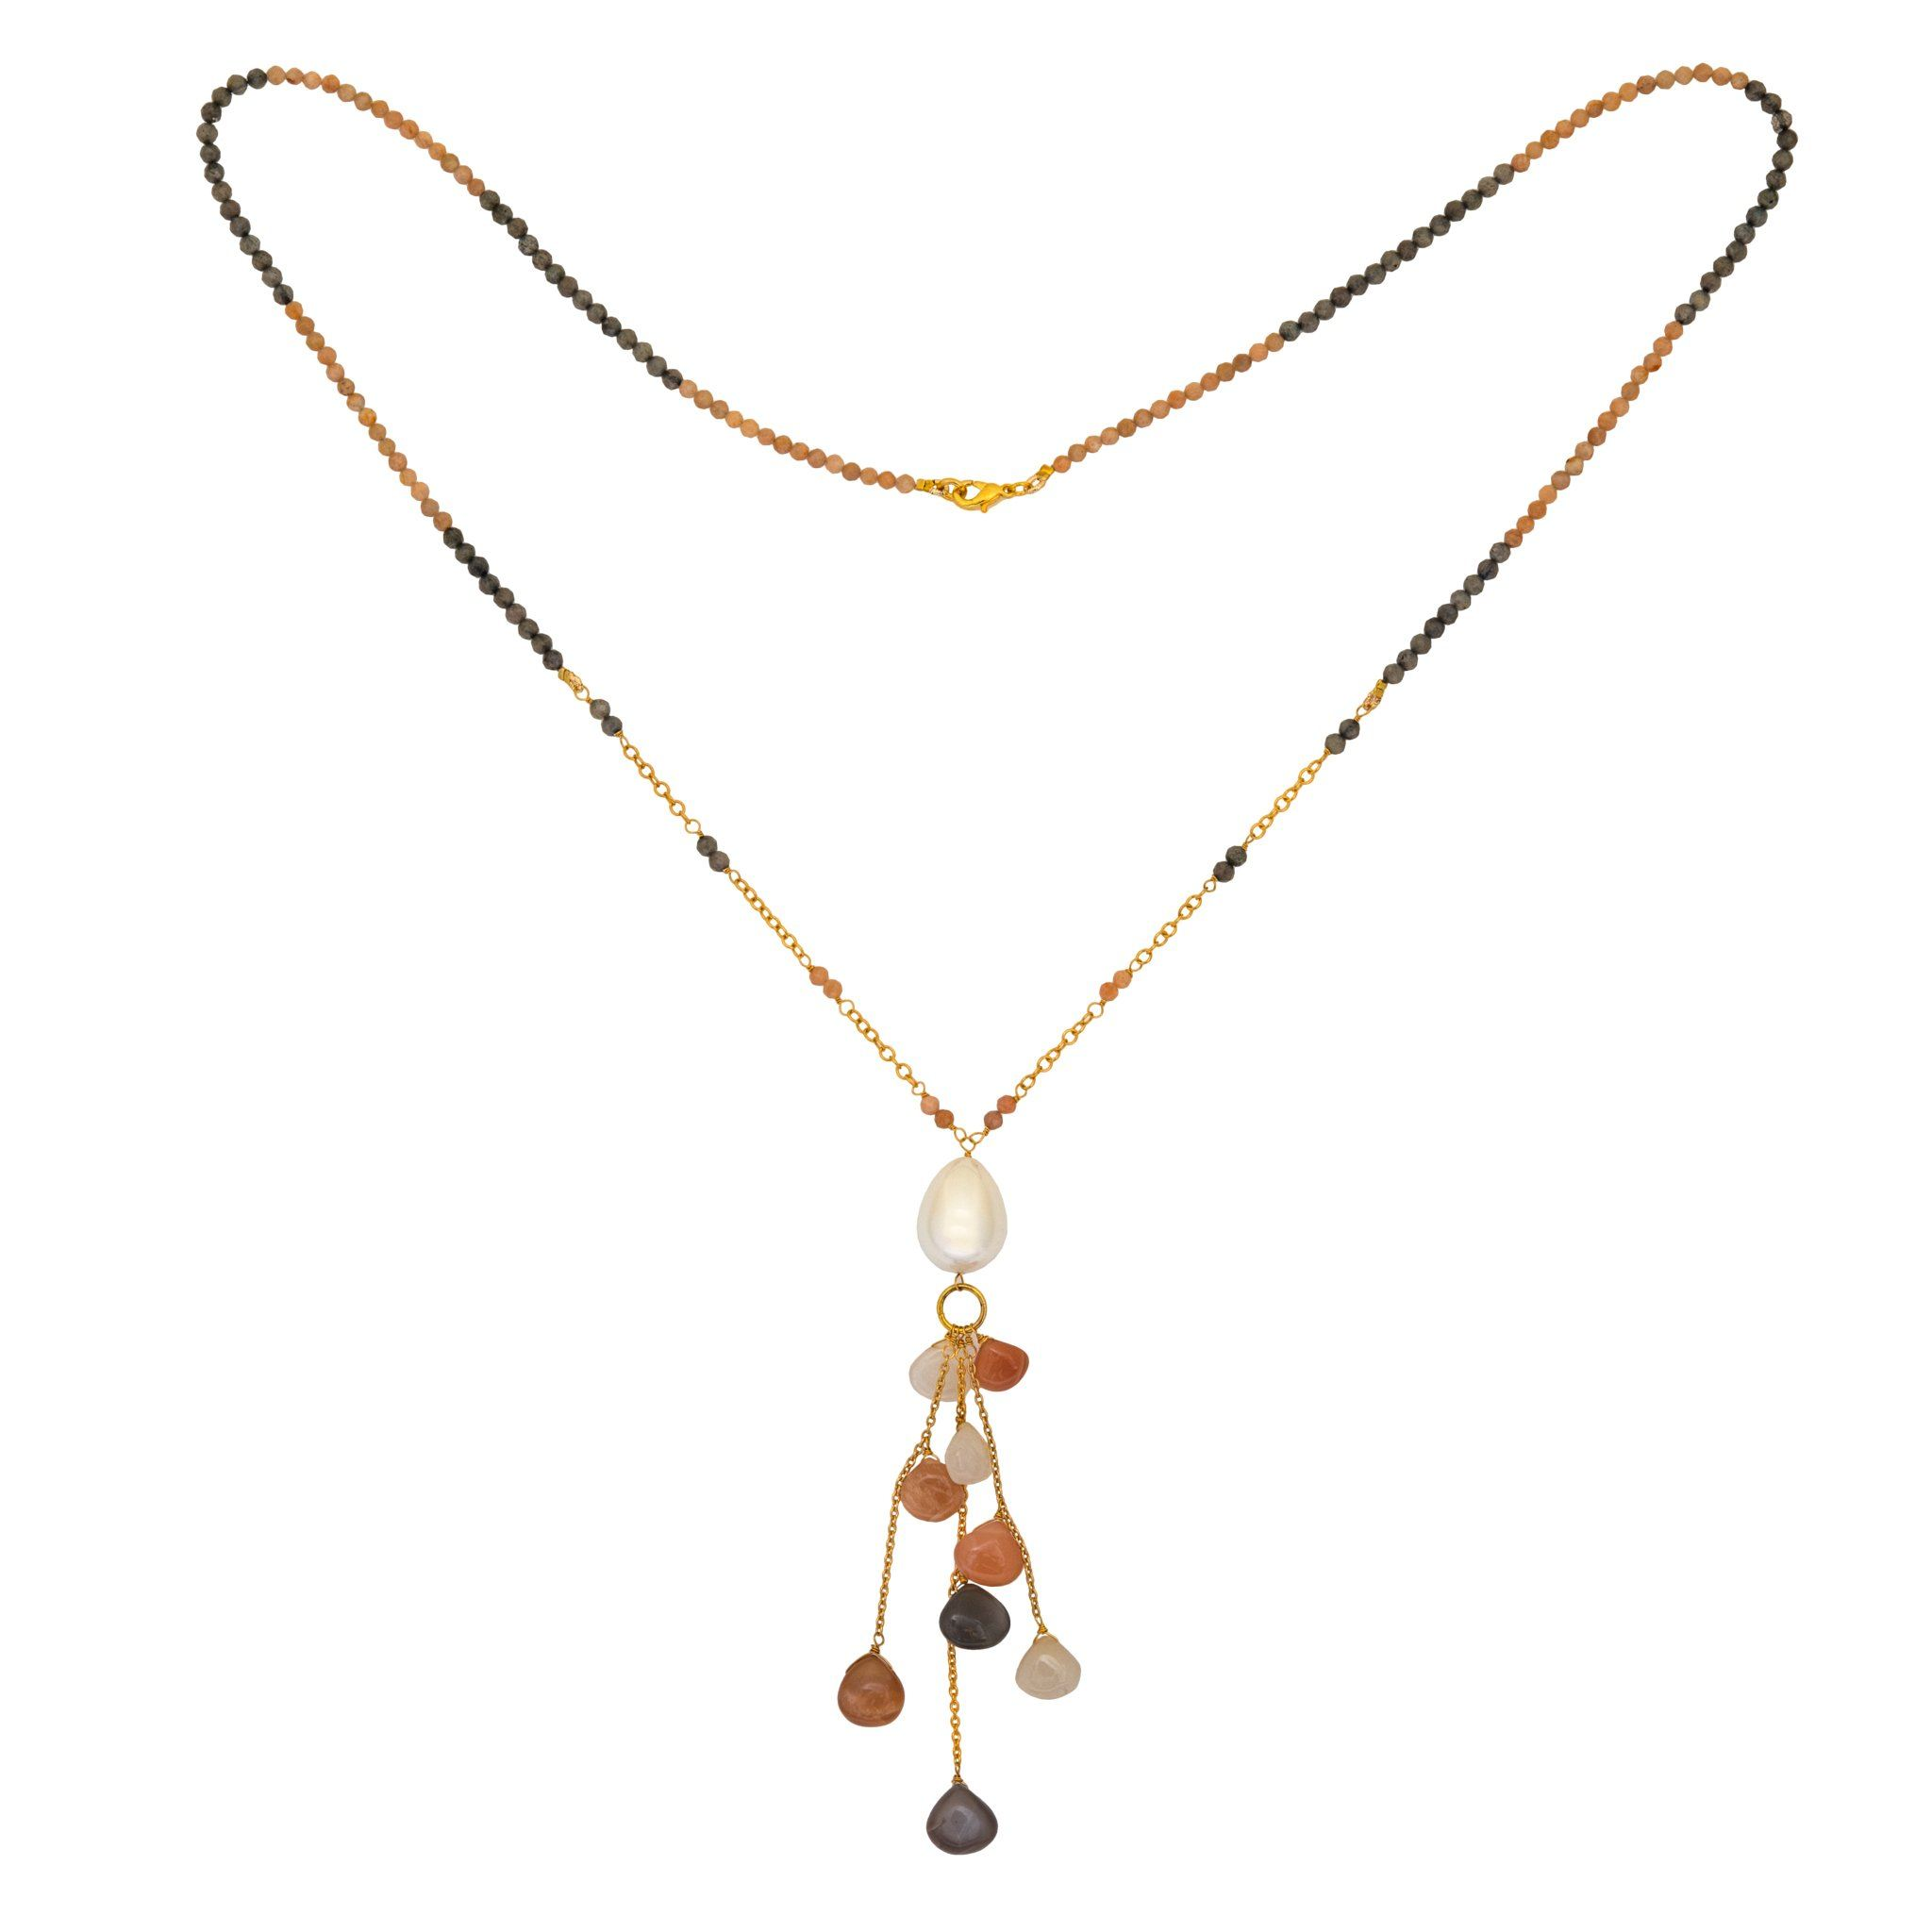 COCO pearl and moonstone necklace with drops - MadamSiam